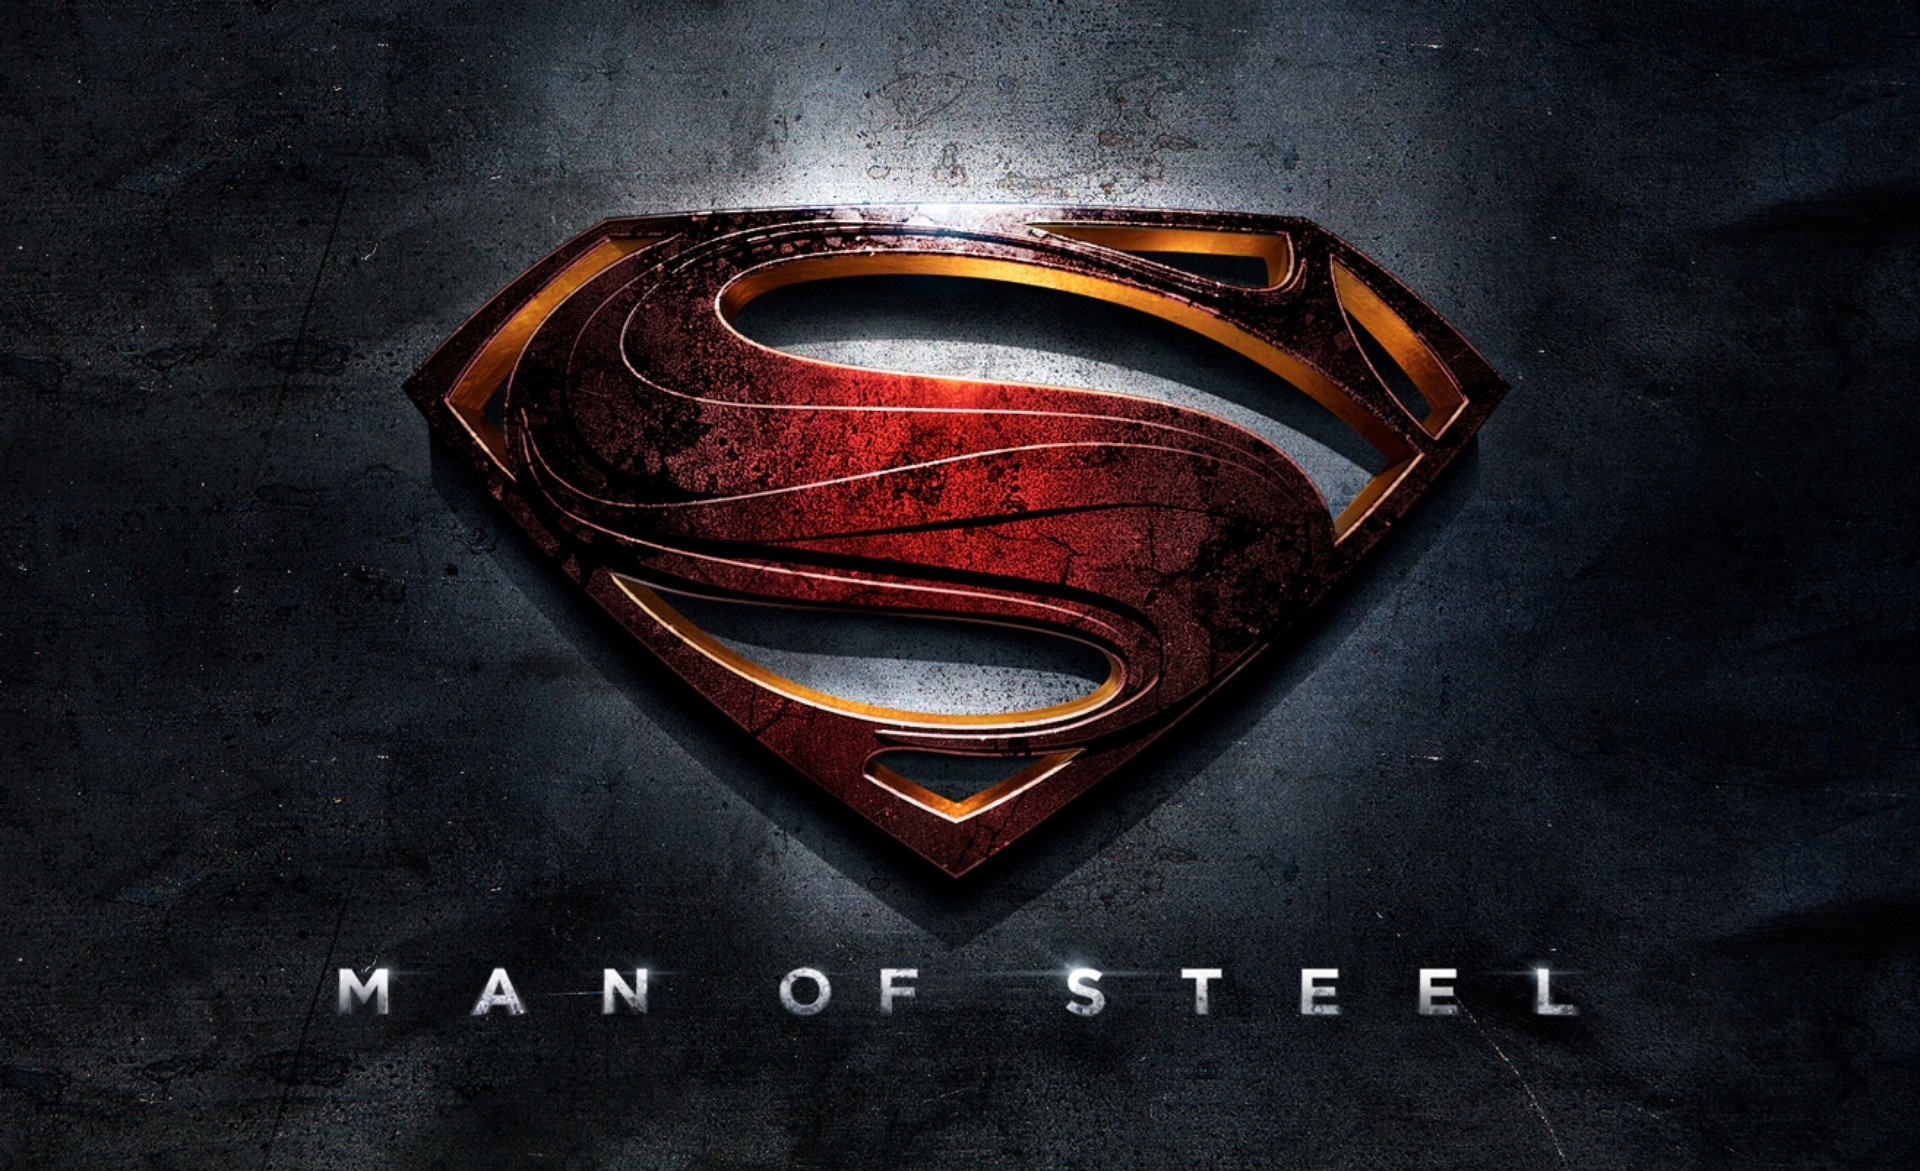 'Man of Steel' será tensa, inquietante...